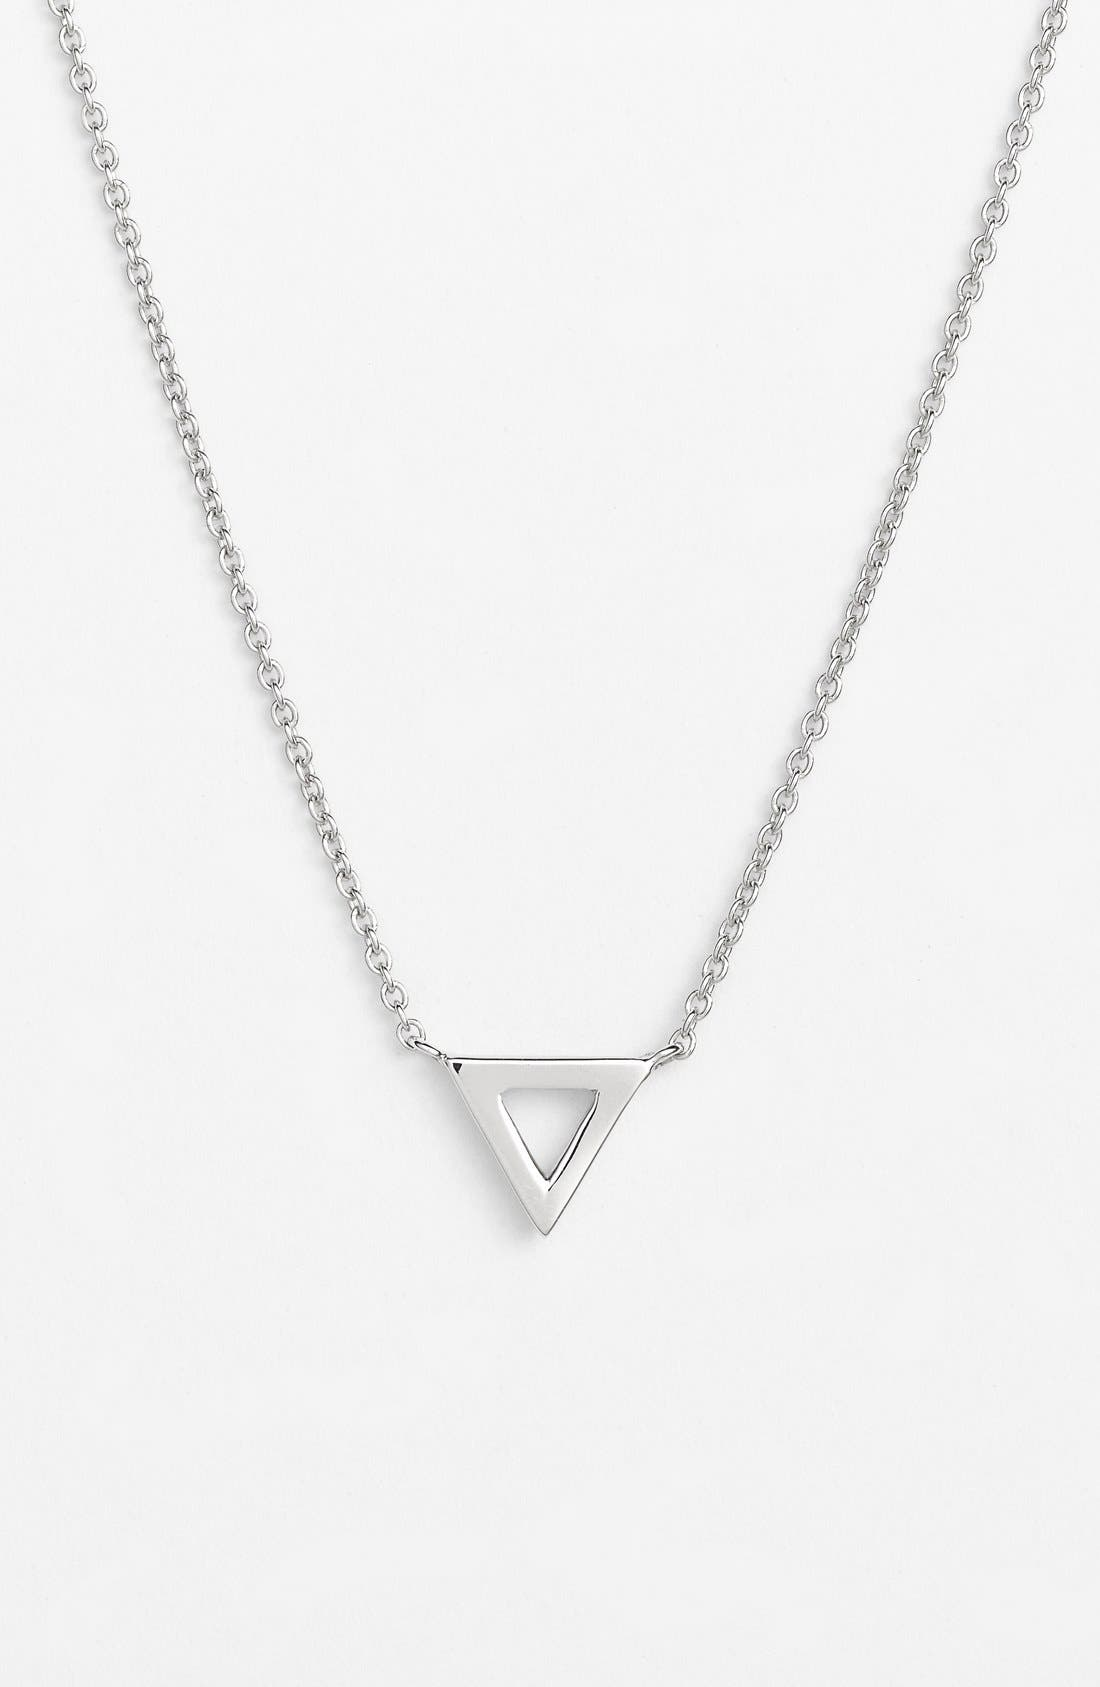 Alternate Image 1 Selected - Bony Levy Triangle Pendant Necklace (Nordstrom Exclusive)